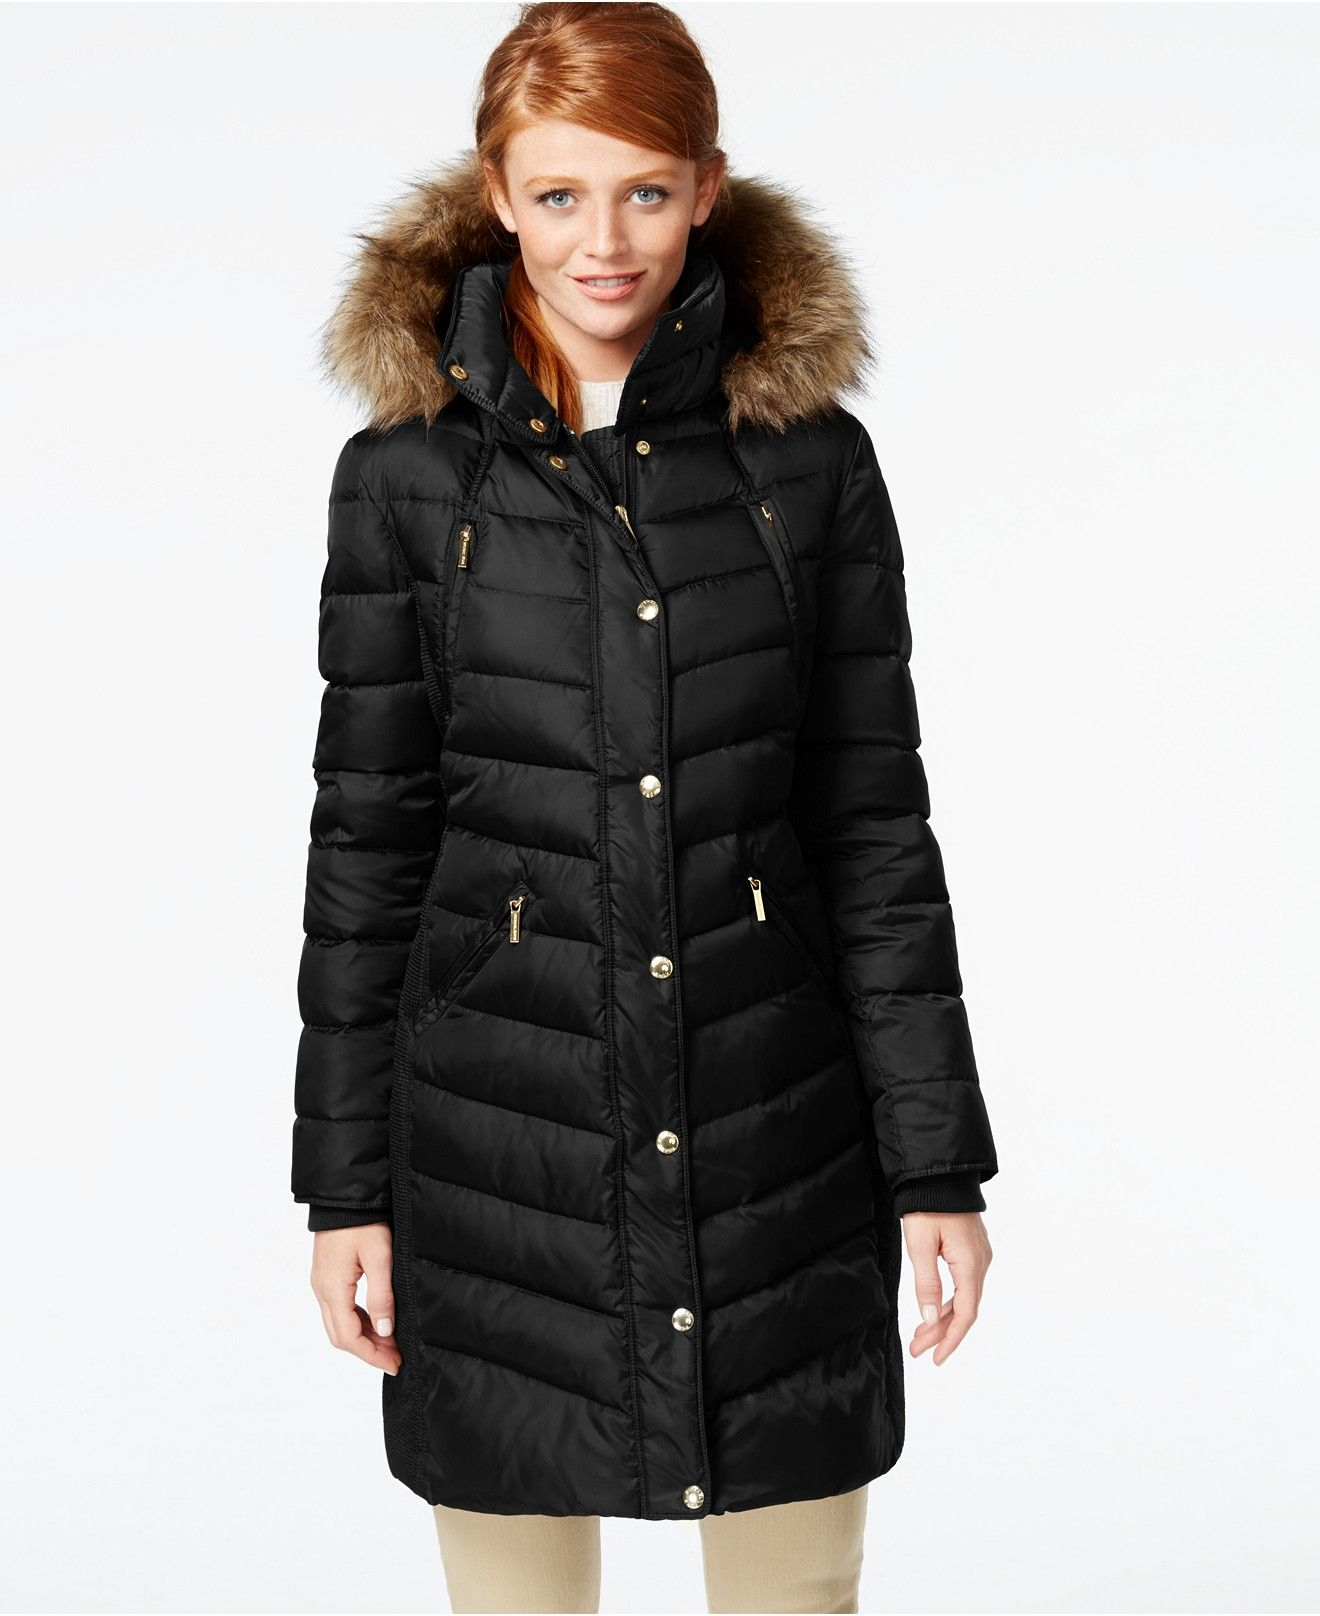 MICHAEL Michael Kors Hooded Faux-Fur-Trim Down Puffer Coat - Coats ...